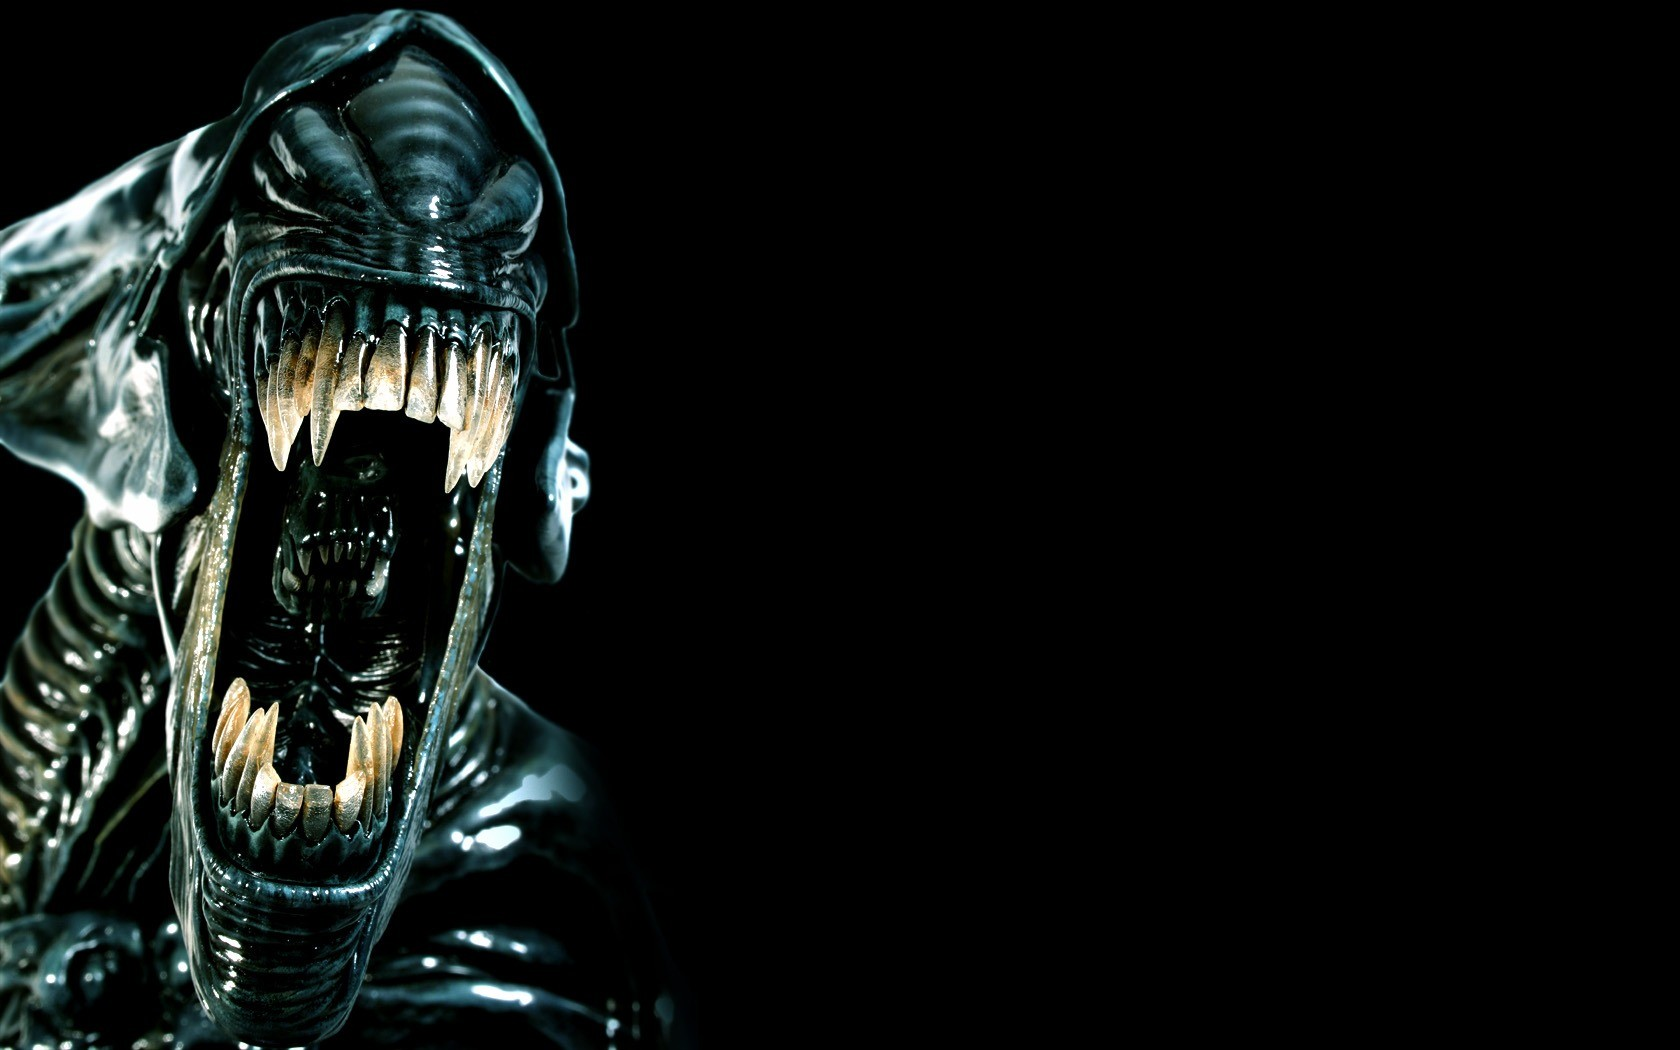 Alien Movie Wallpaper 1680x1050